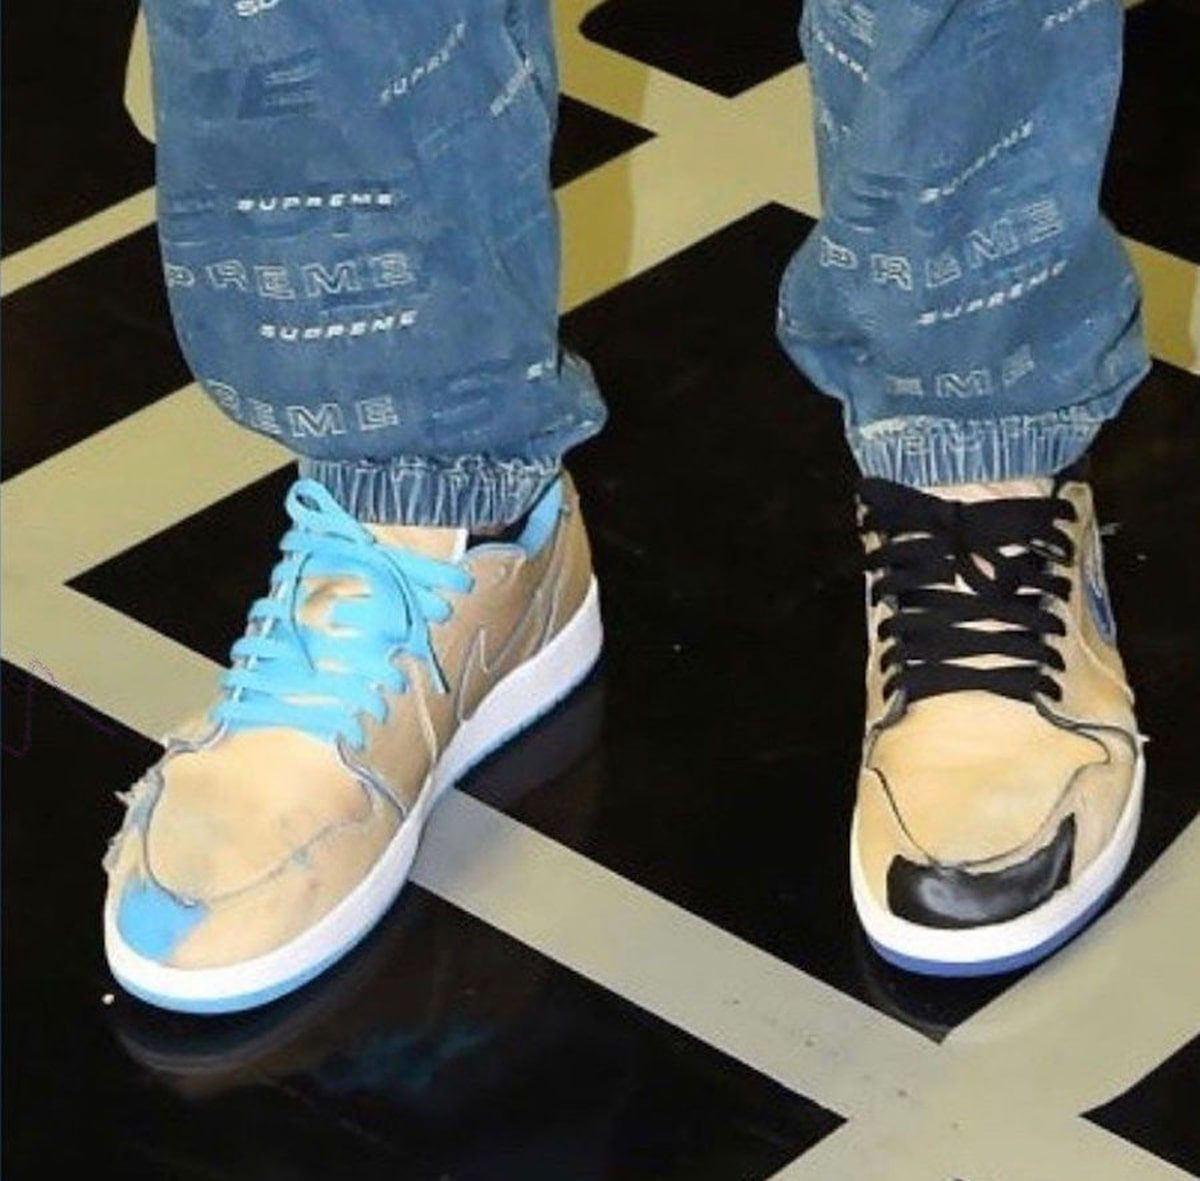 """First Looks at the Nike SB x Air Jordan 1 Low """"Desert Ore"""" Show Wear Away Uppers"""